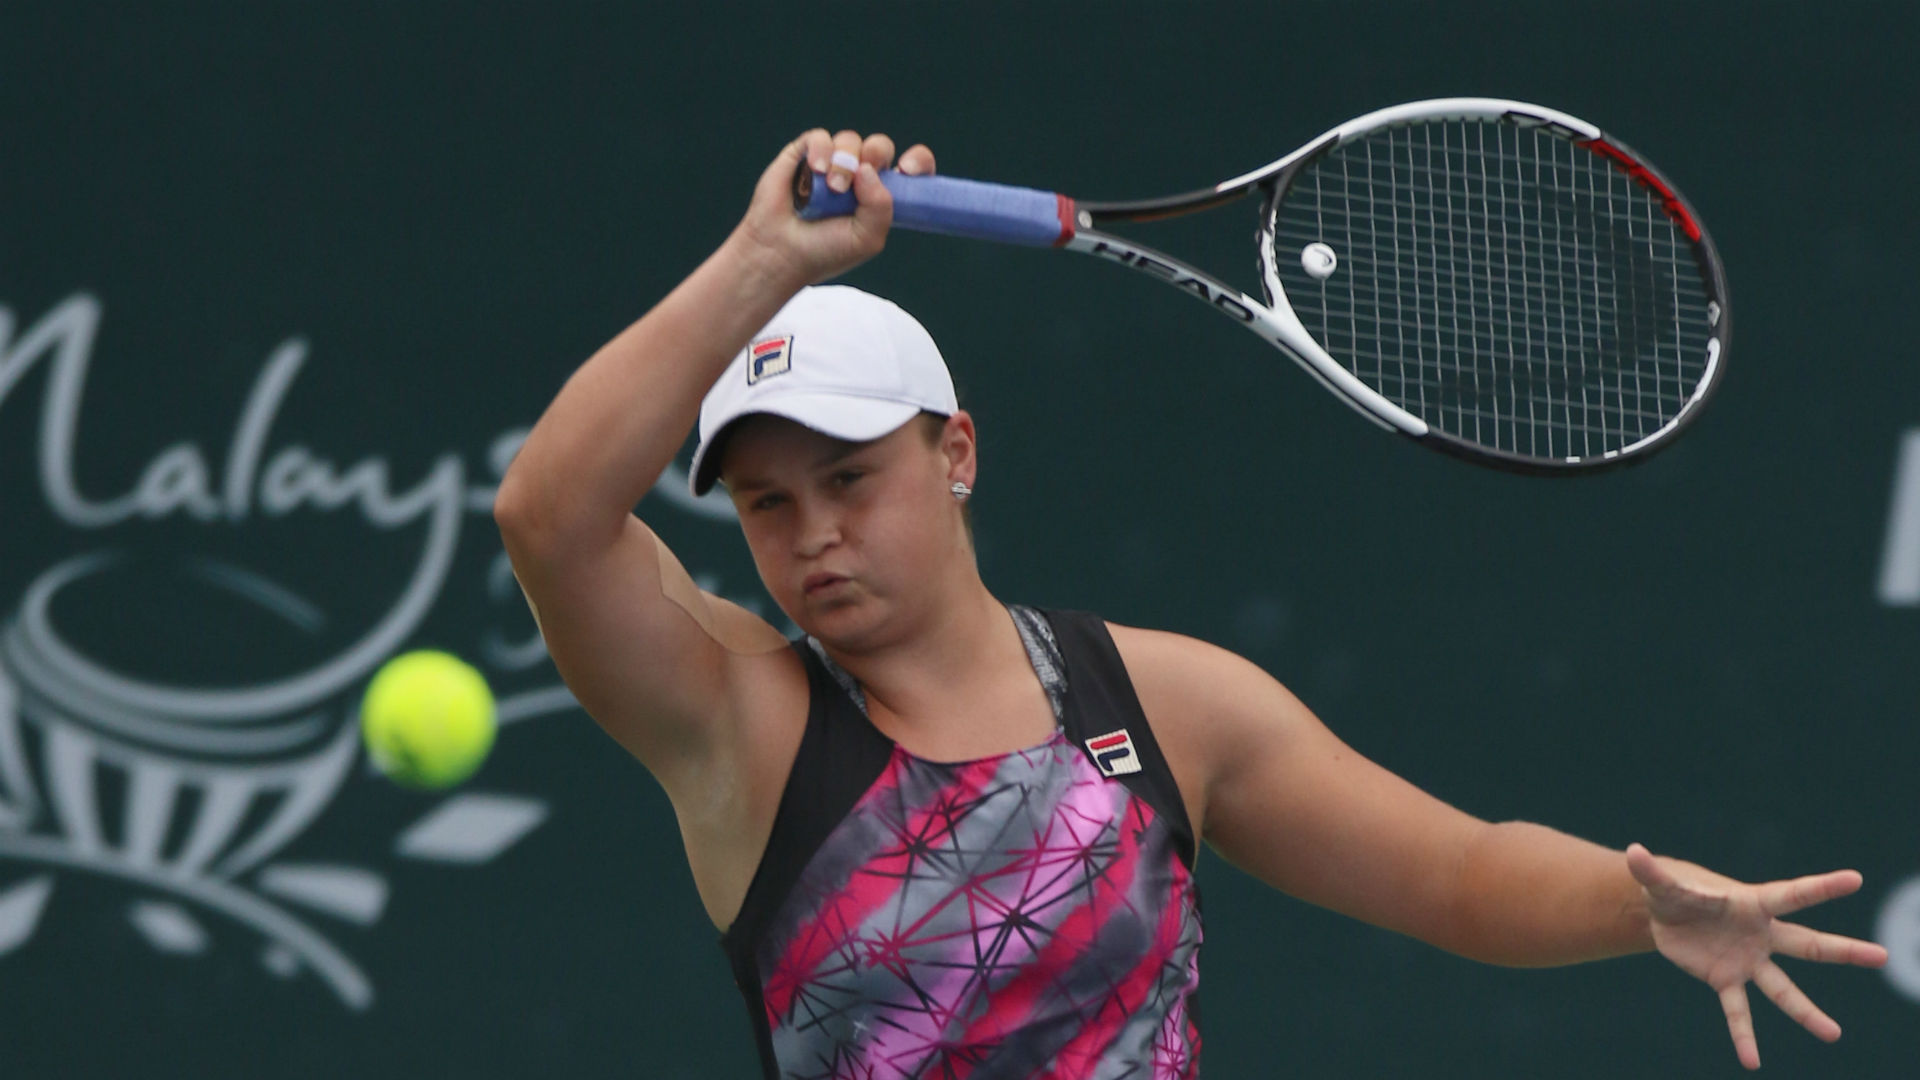 Malaysian Open goes to qualifier Barty